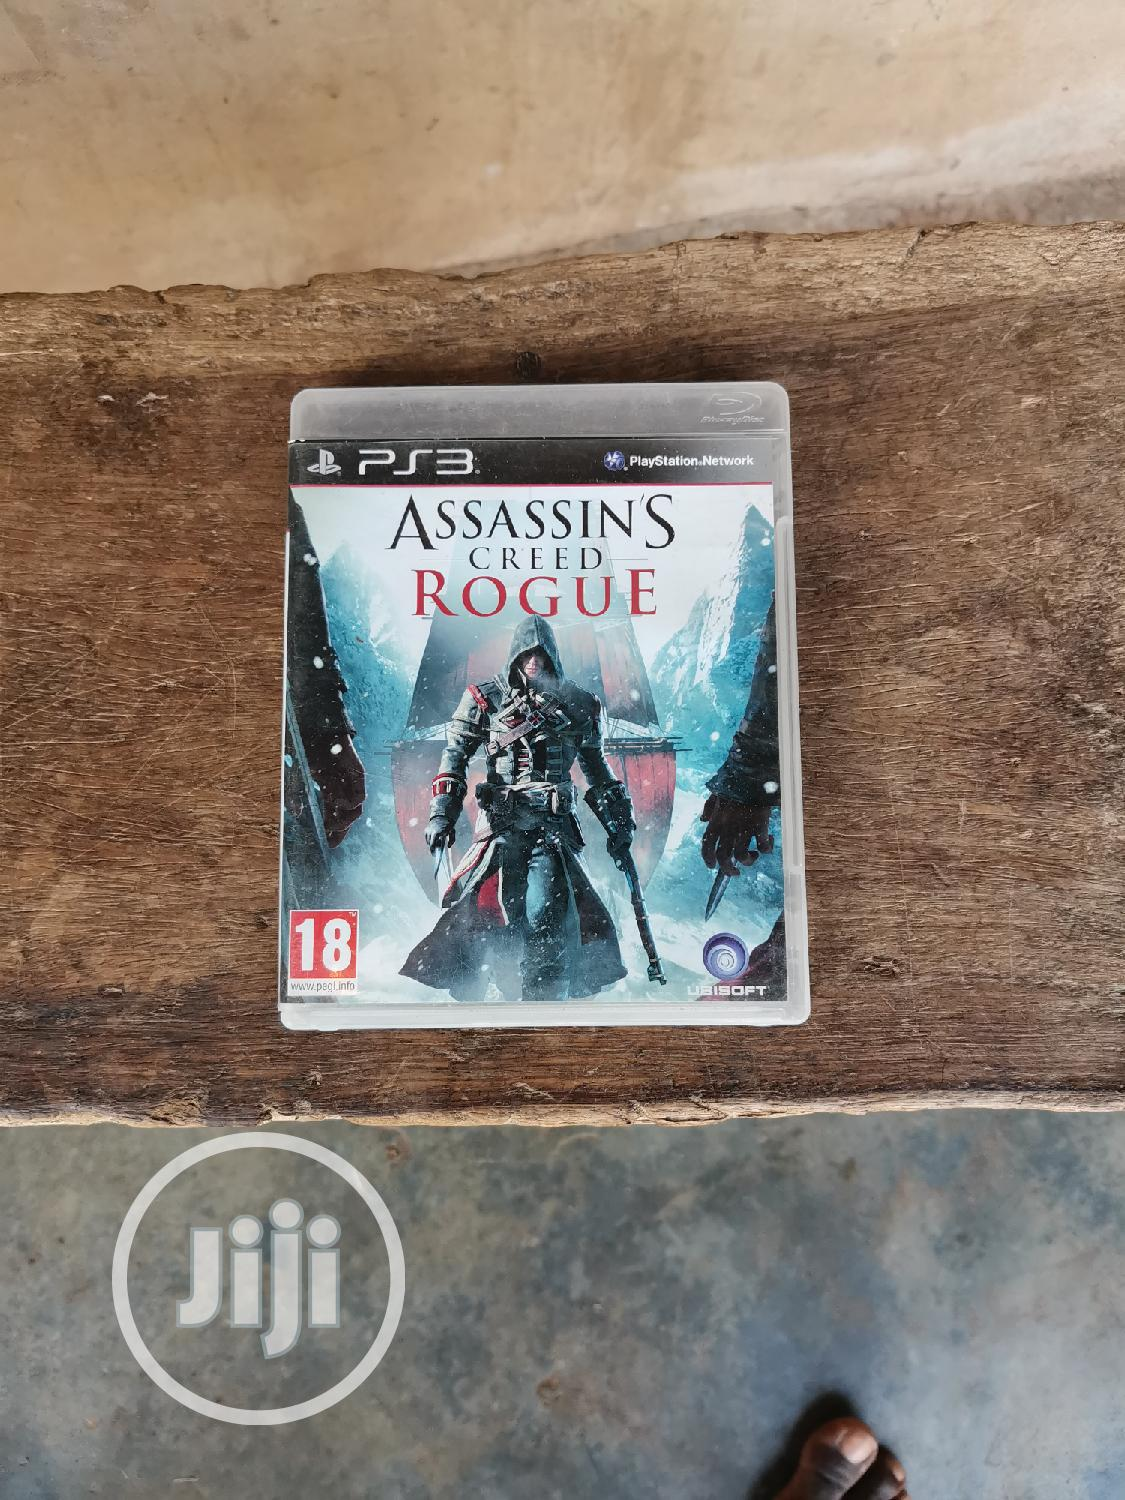 Archive: PS3 Games Disks and We Have Over 90 Games for Hacked PS3.